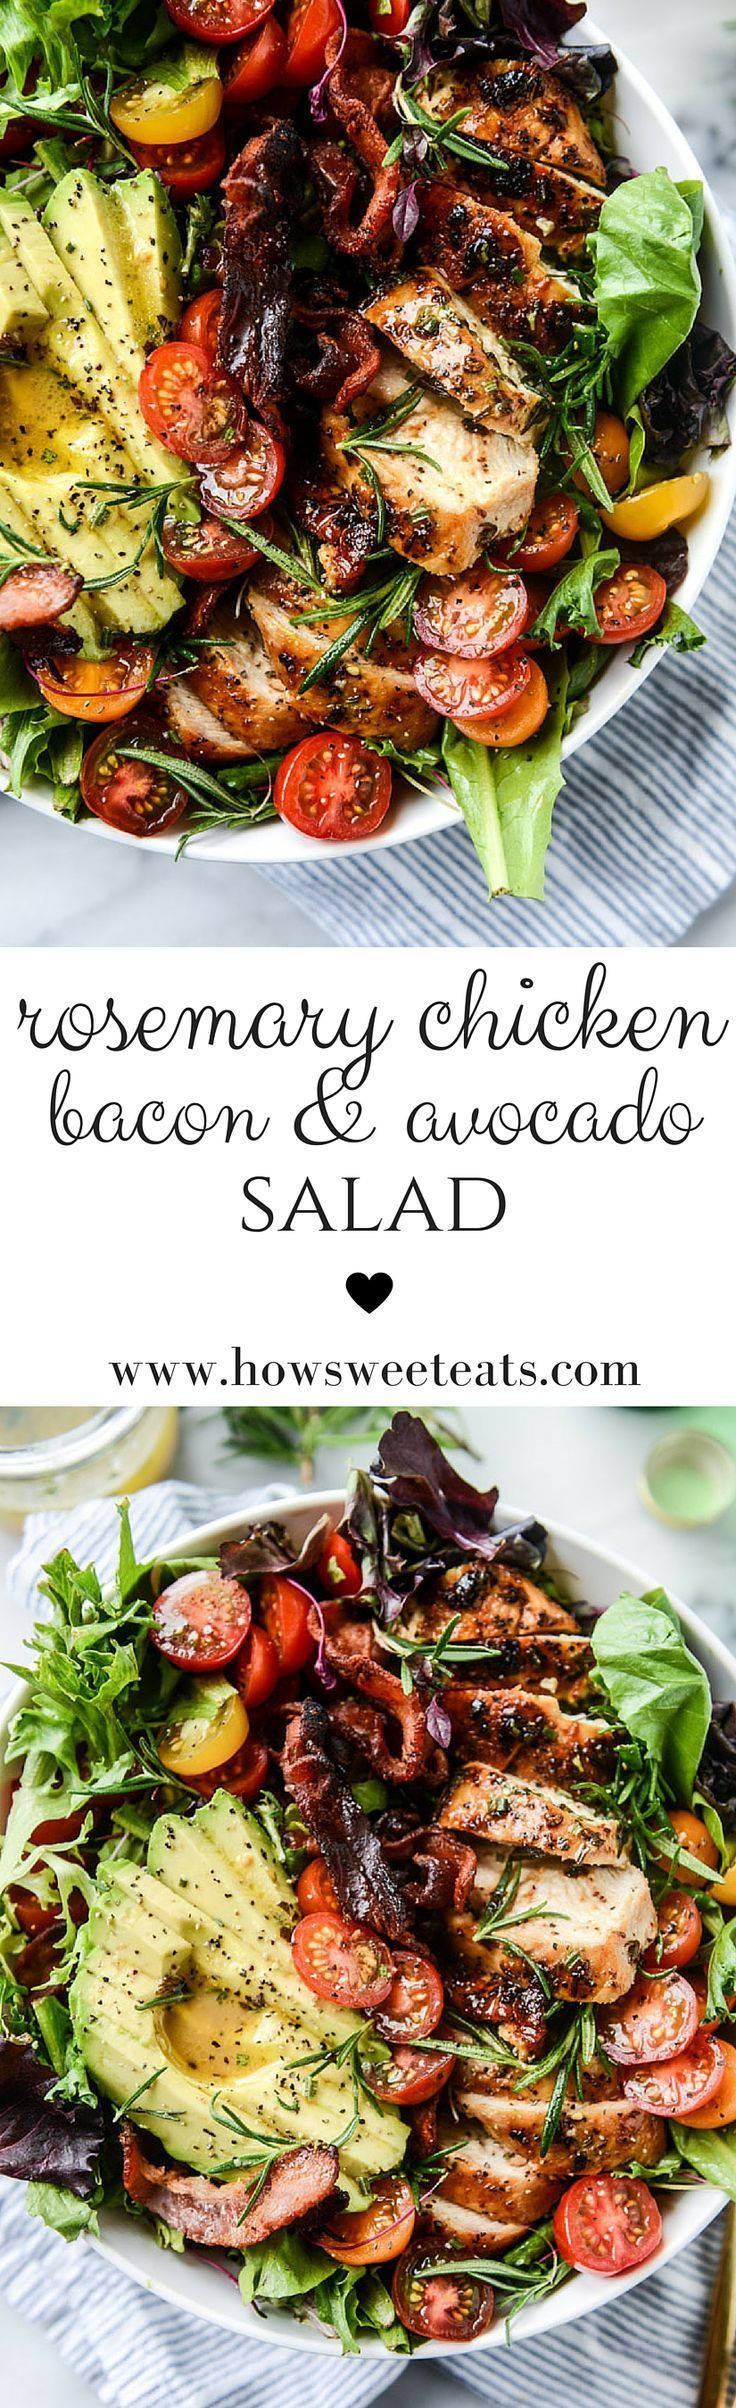 rosemary chicken, bacon and avocado salad I http://howsweeteats.com